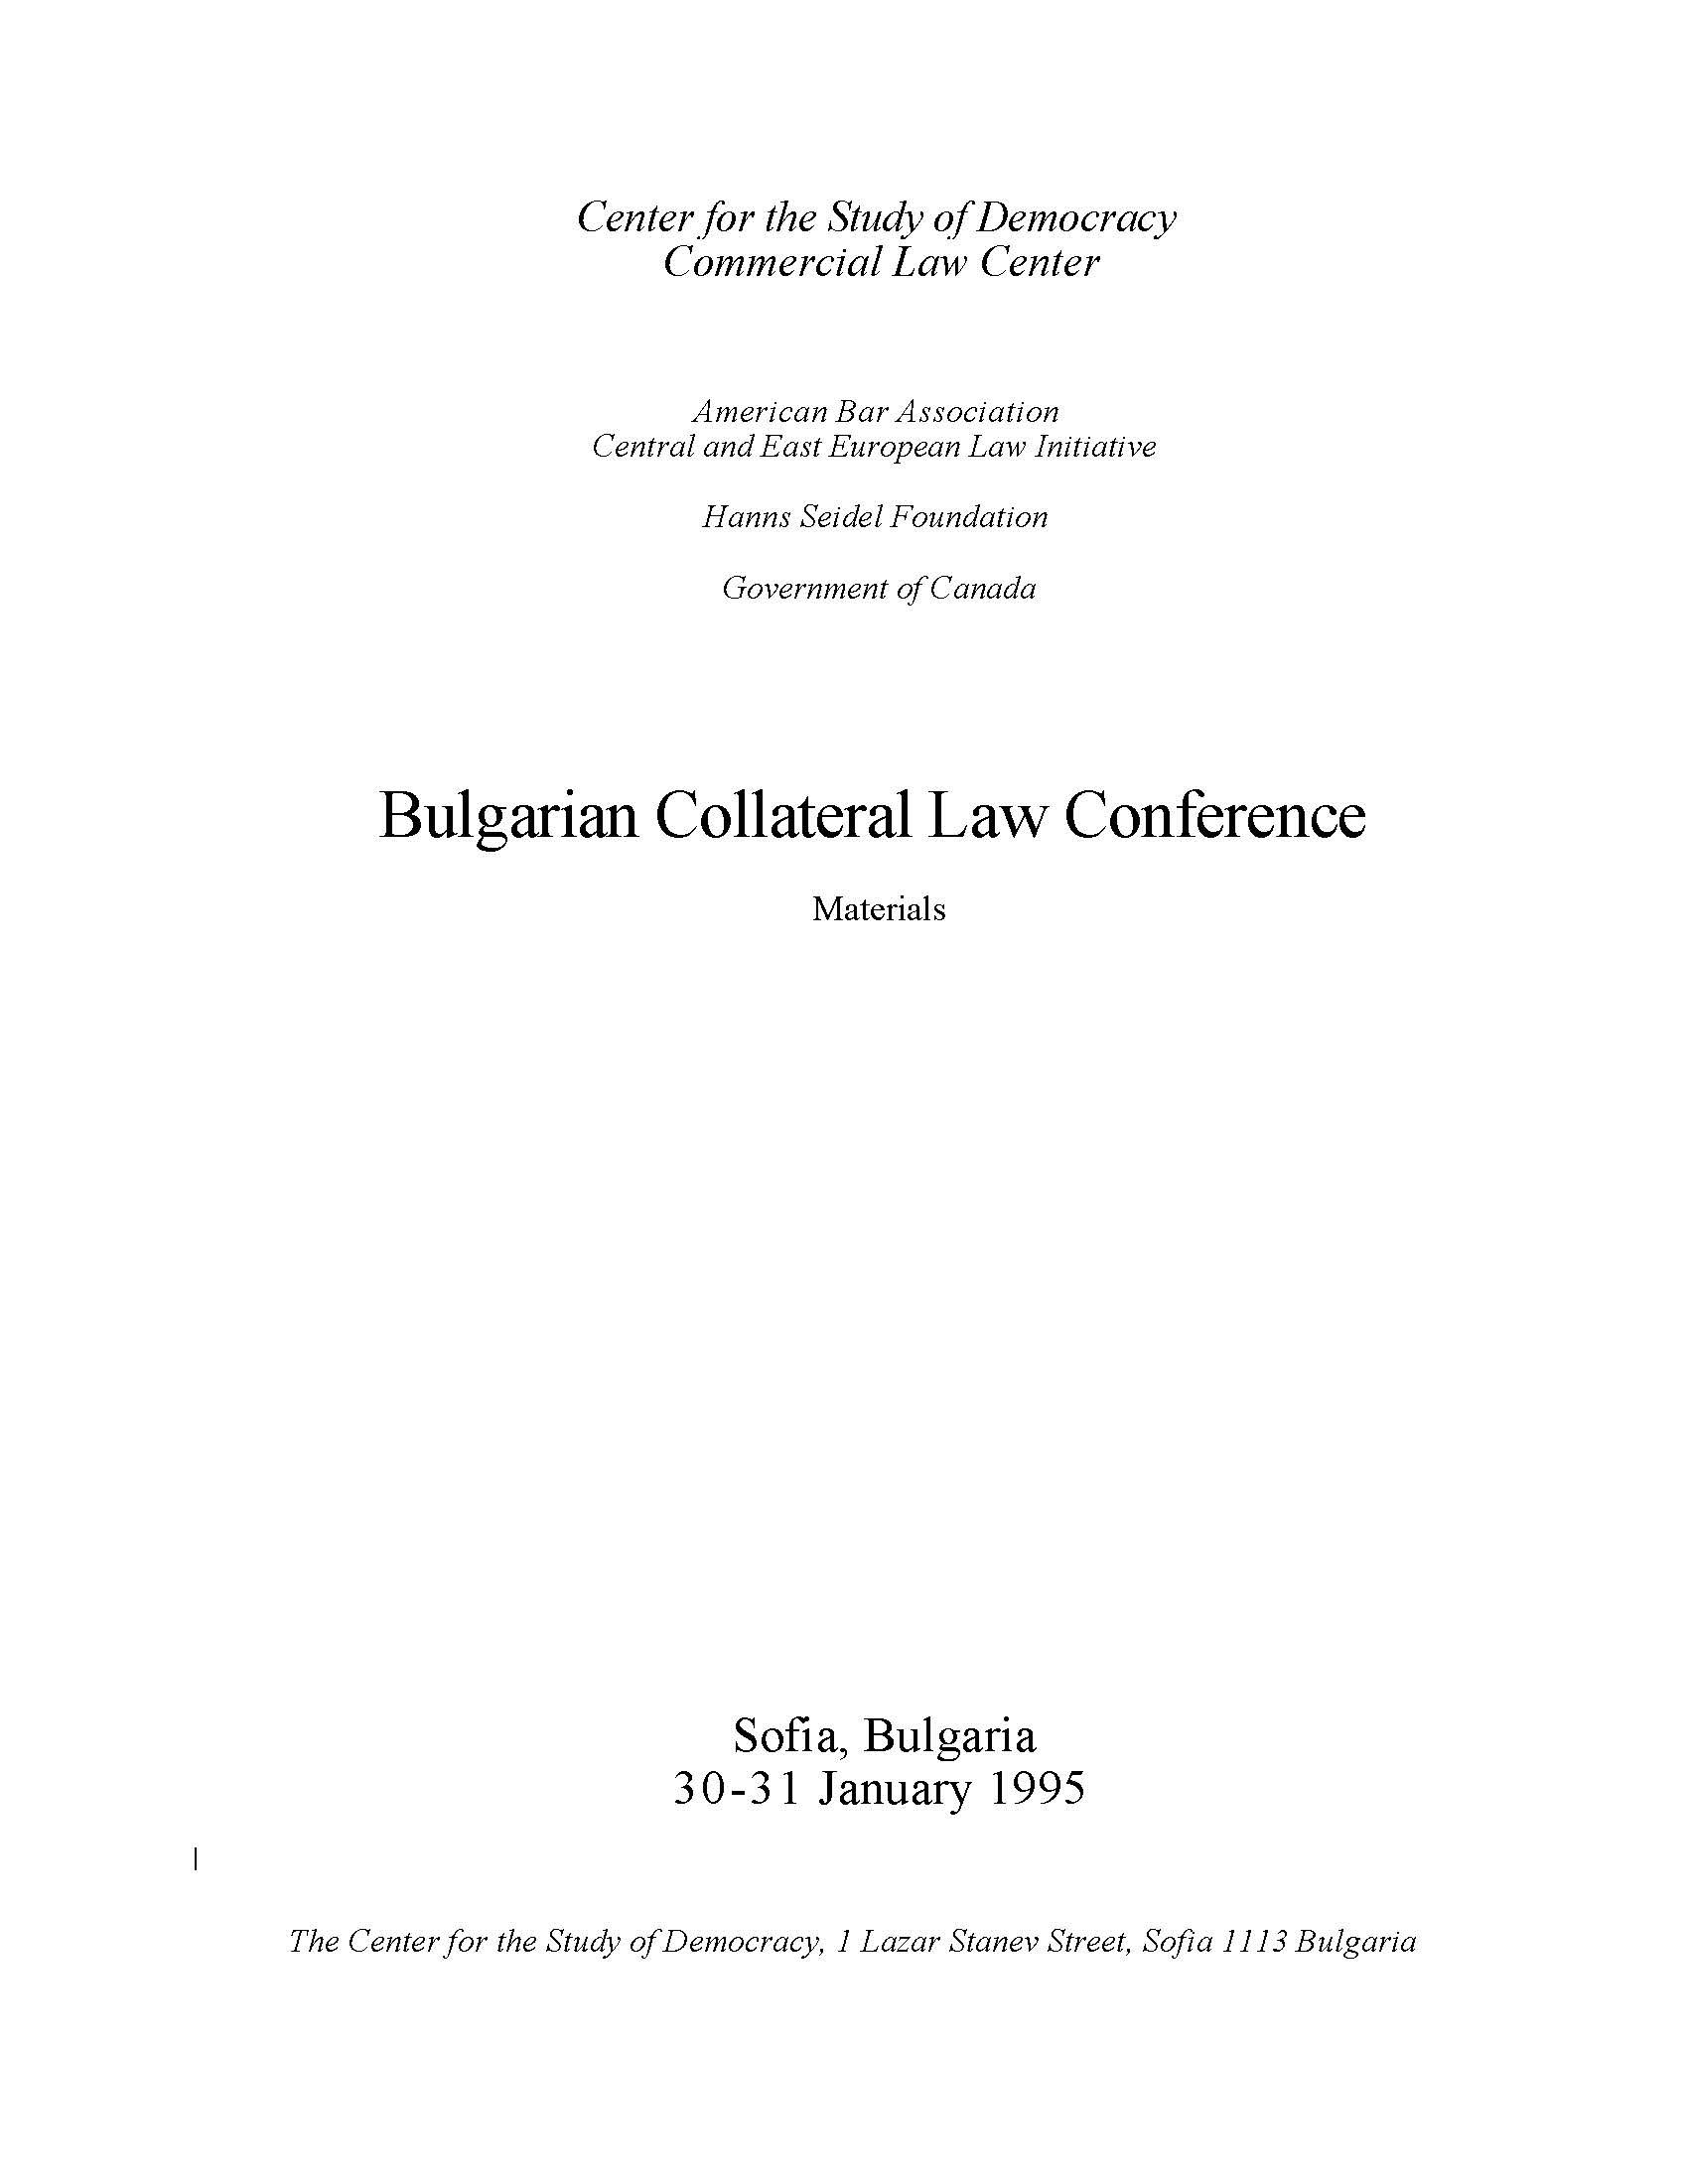 Materials from the Bulgarian Collateral Law Conference Cover Image